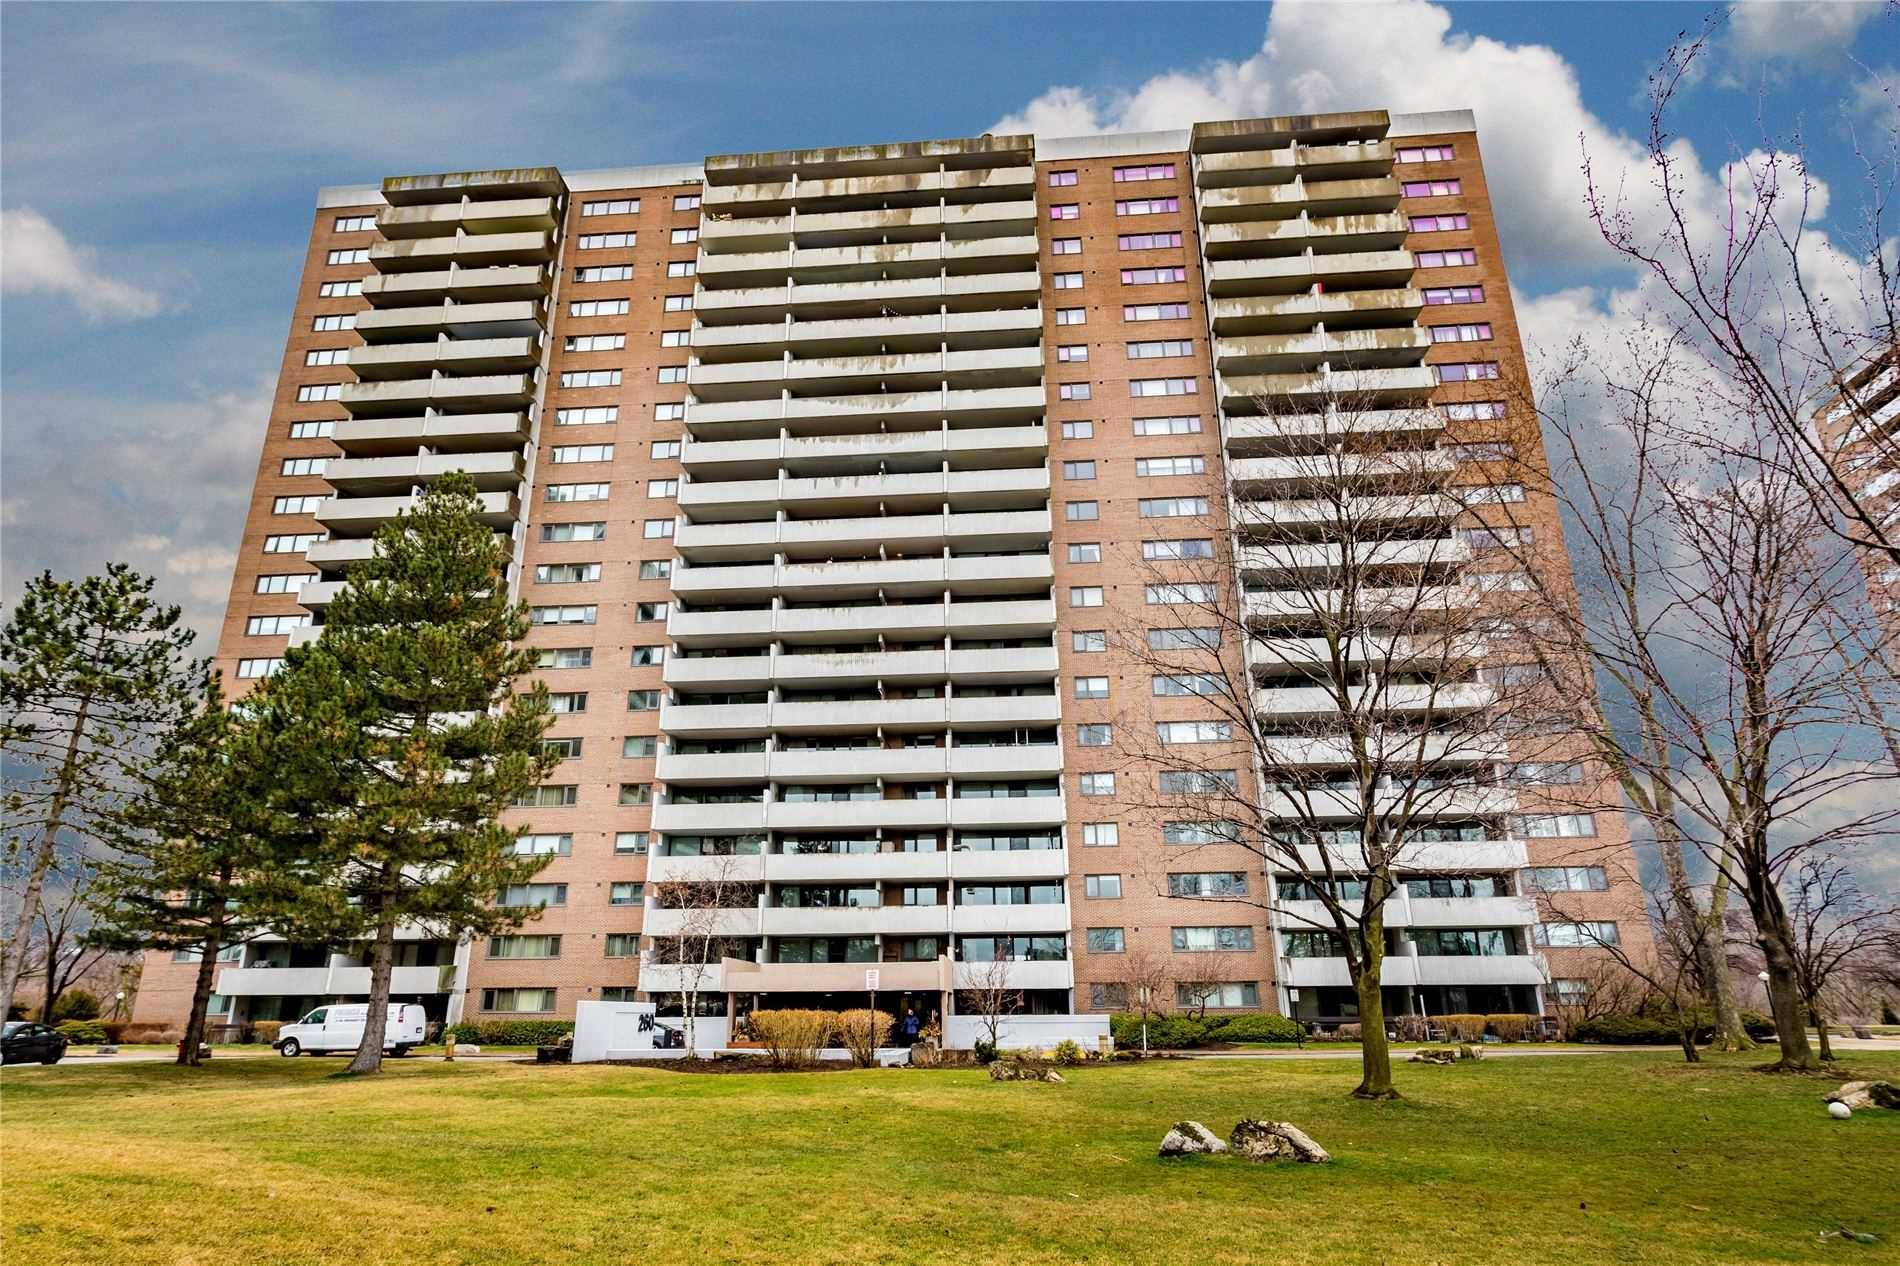 Buliding: 260 Scarlett Road, Toronto, ON